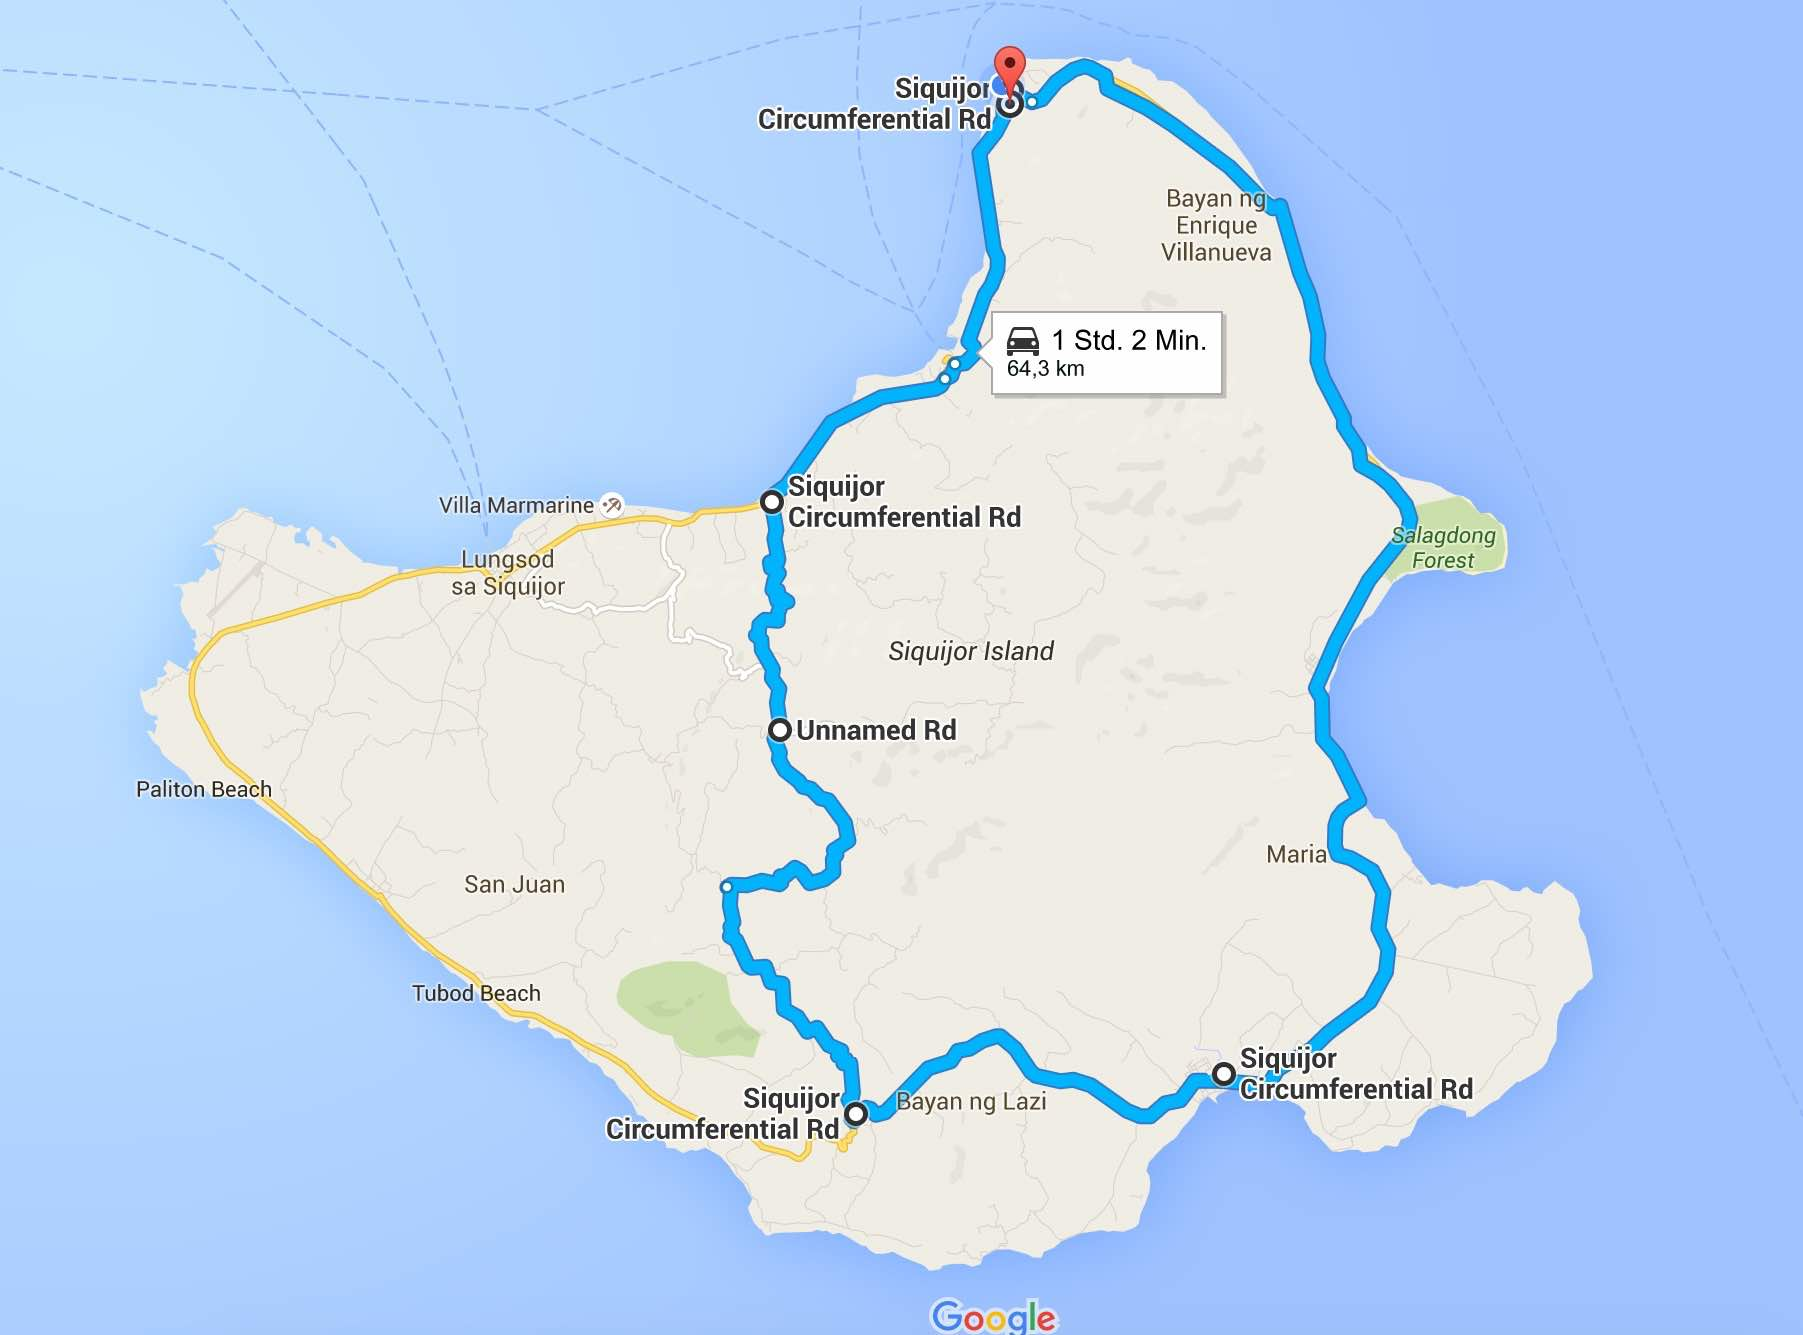 Route Siquijor